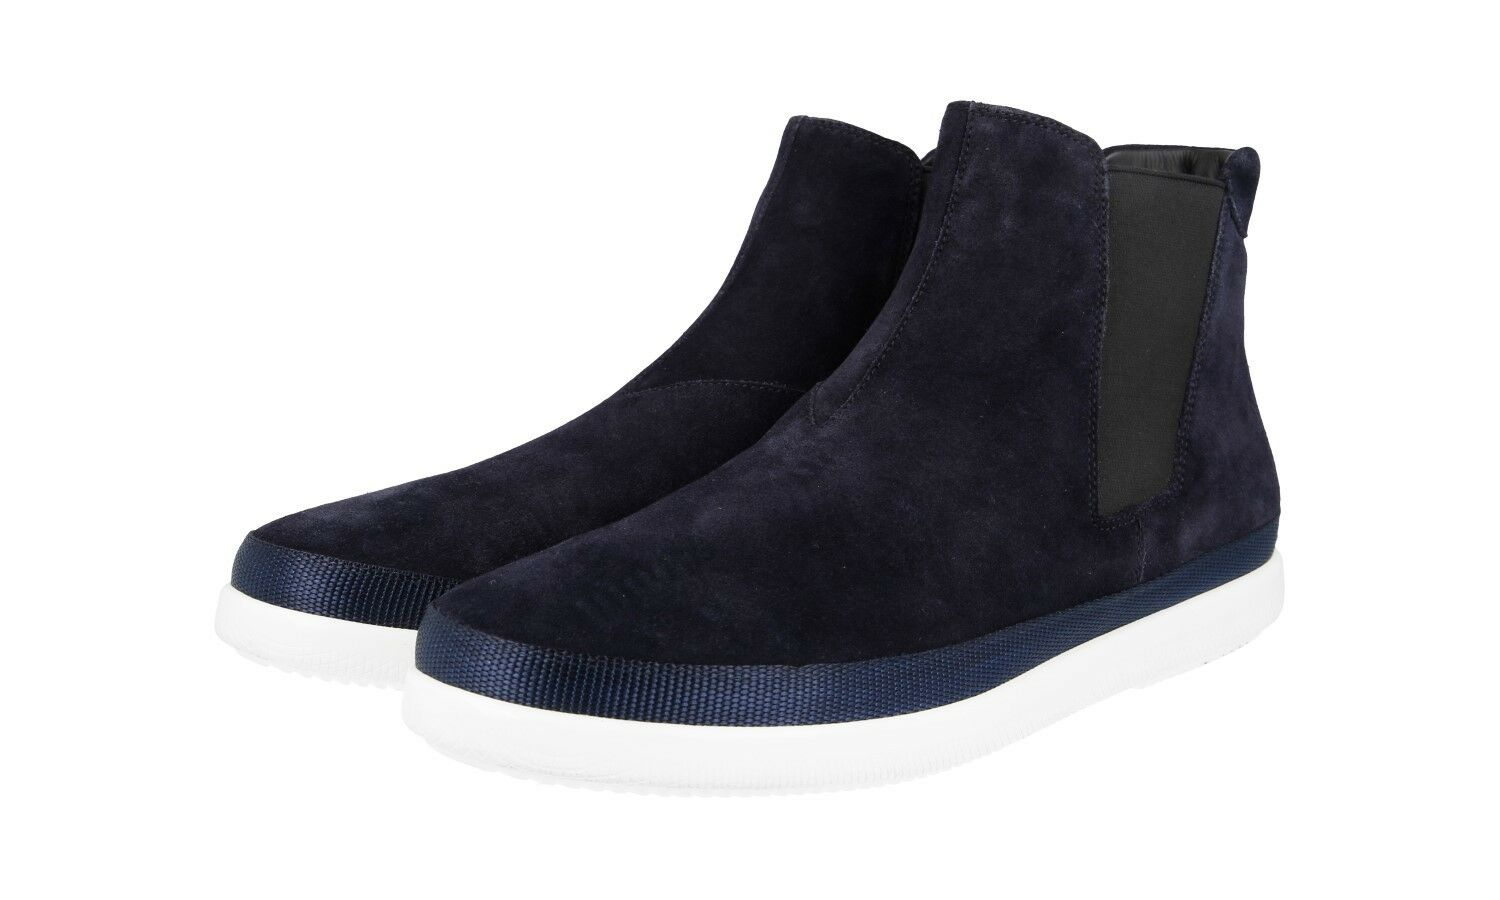 AUTH LUXURY PRADA HALF-BOOT SHOES 4T3154 blueE SUEDE NEW 8 42 42,5